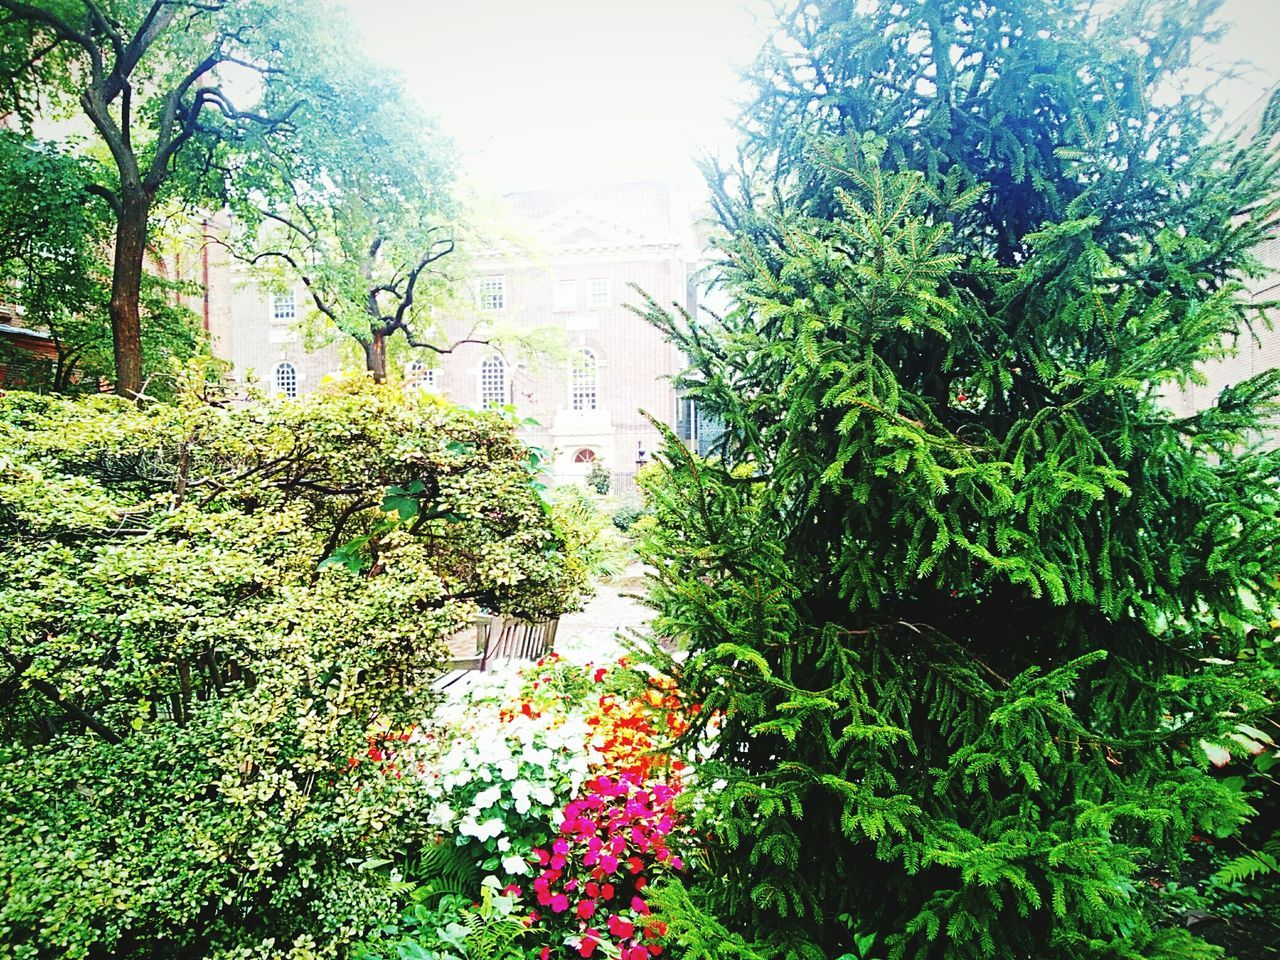 growth, plant, flower, nature, green color, outdoors, tree, day, beauty in nature, no people, freshness, fragility